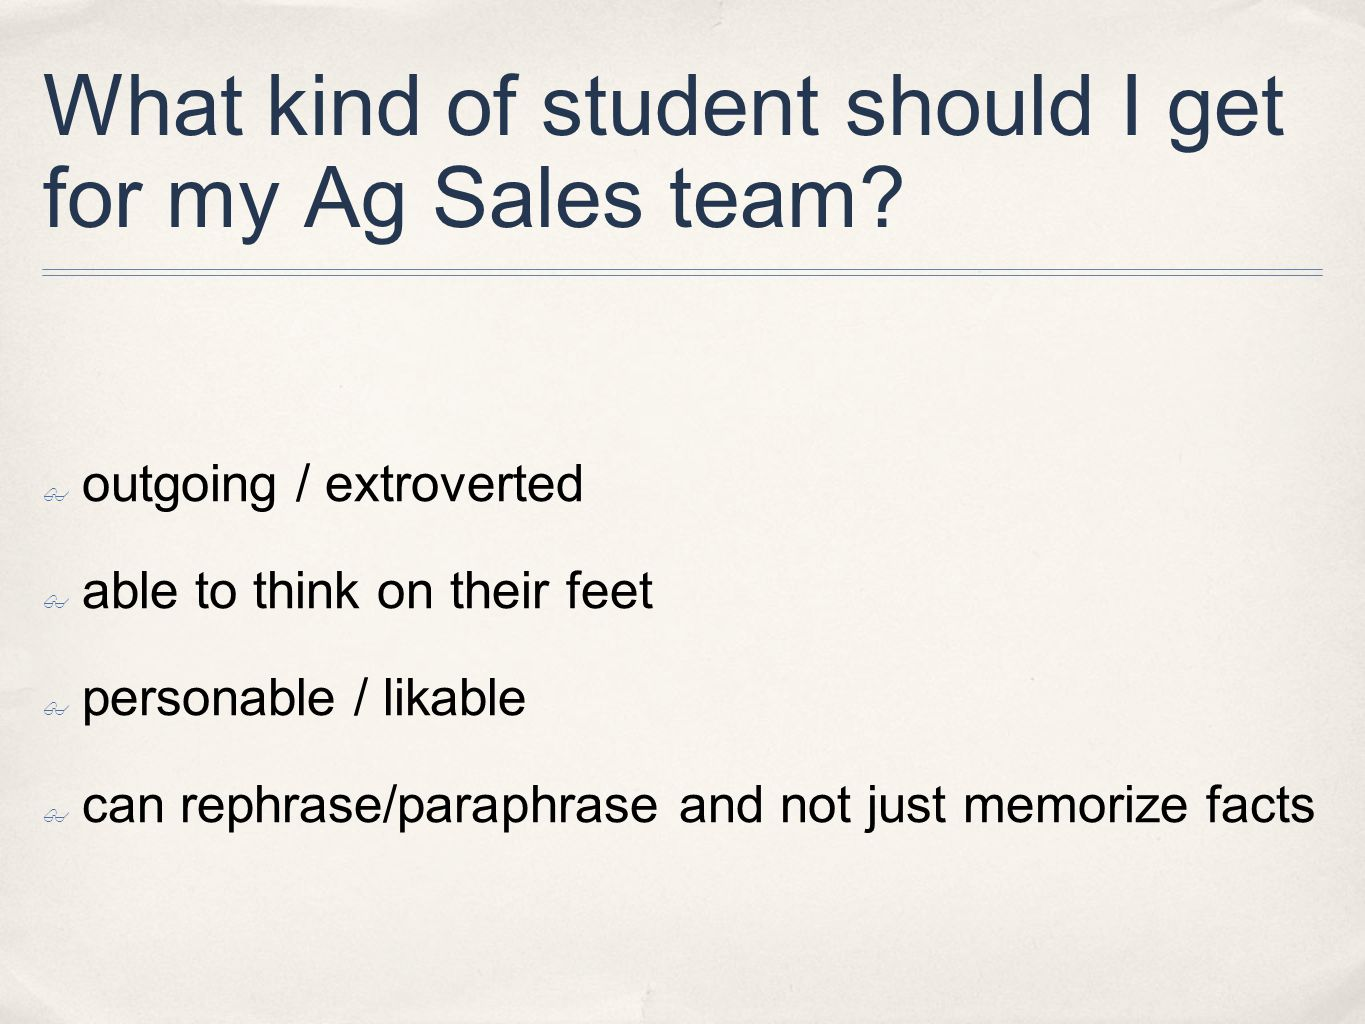 What kind of student should I get for my Ag Sales team